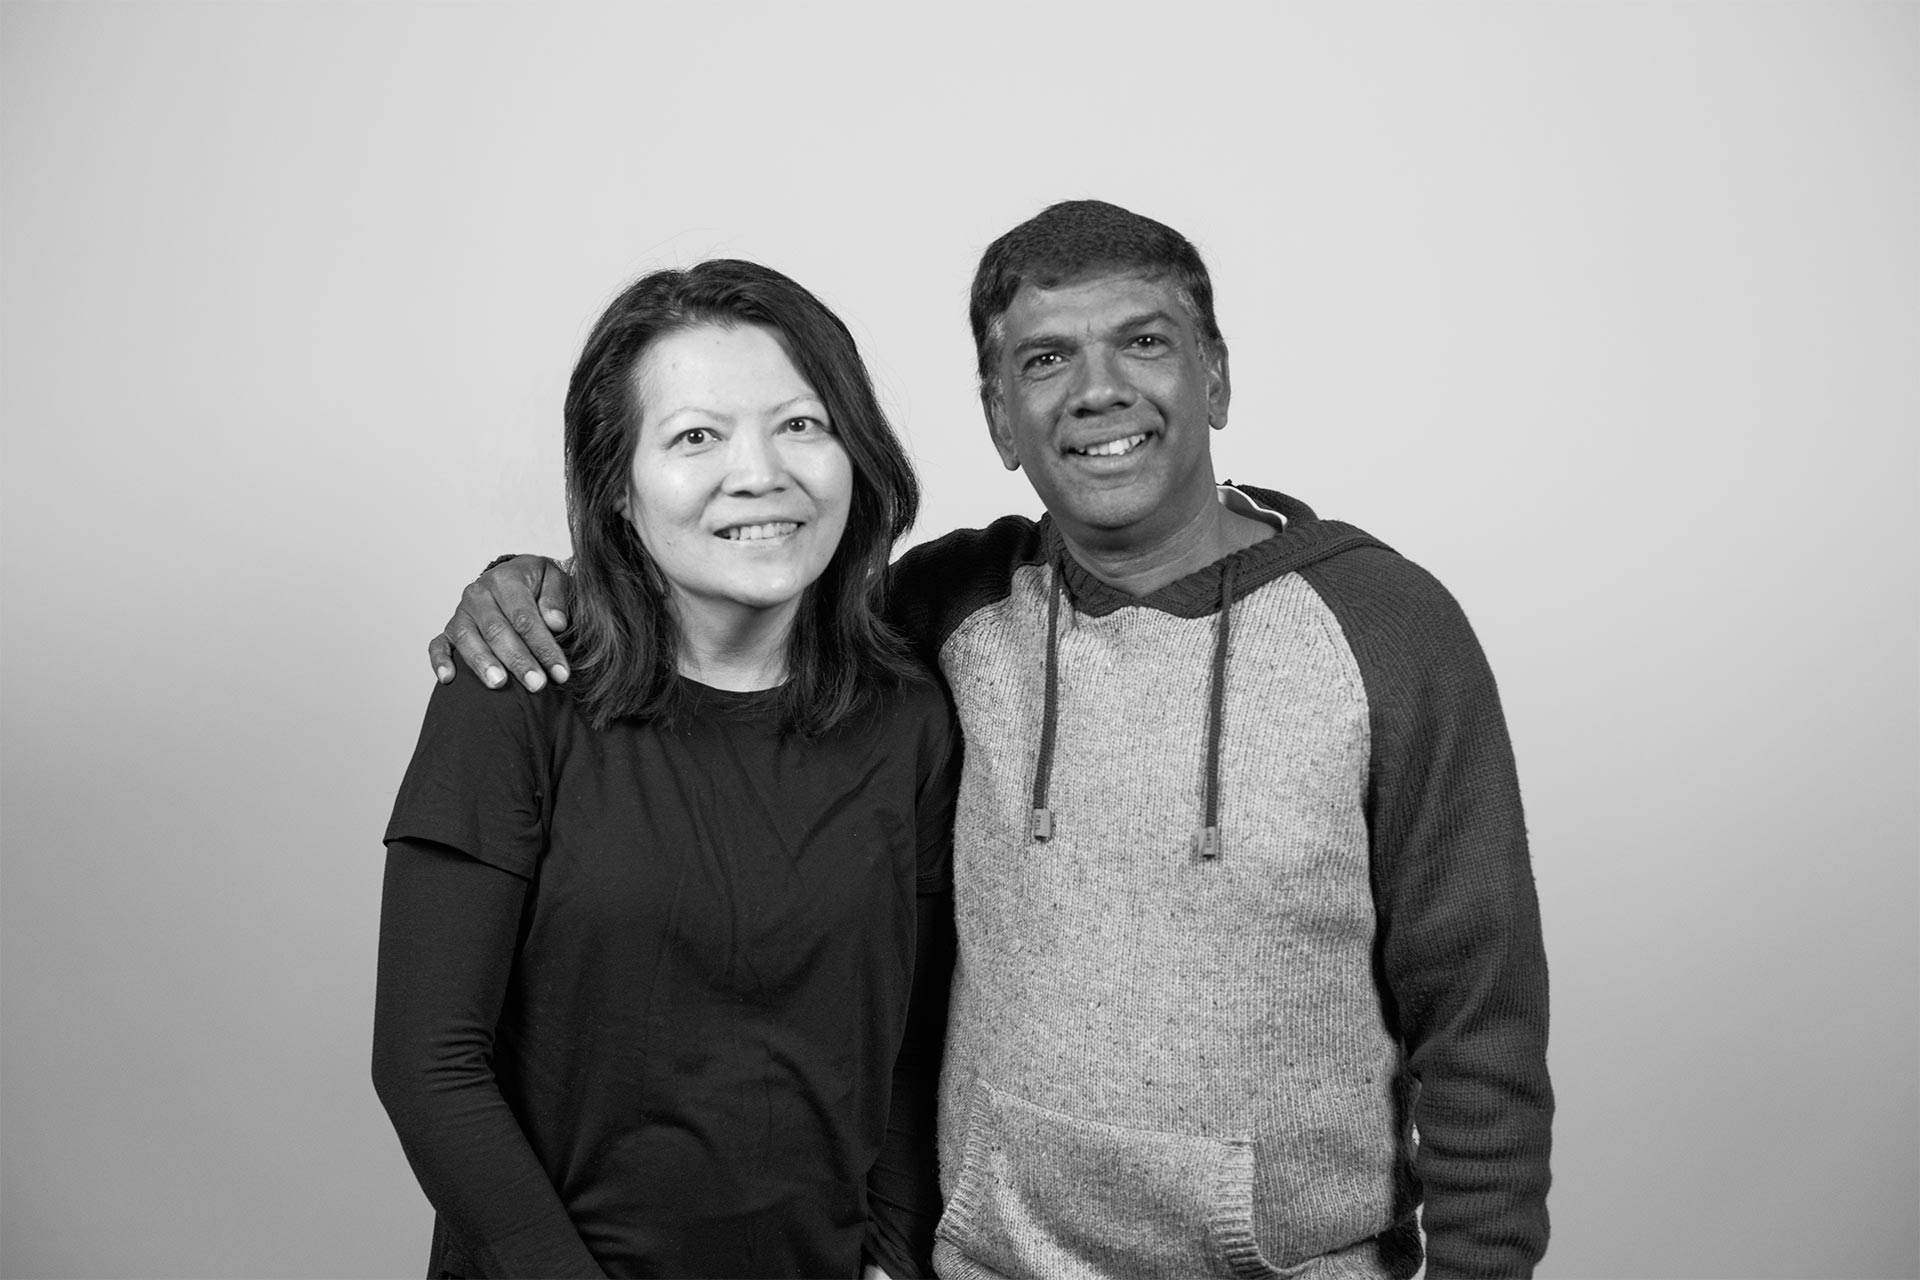 MICHAEL & CHIEWHAR RAJ - MONASH CAMPUS PASTORSMichael and Chiew Har Raj are pastors of both our Casey and Monash Campuses. Knowing every great Malaysian restaurant in Melbourne, Michael and Chiew Har are full of life and passion for God and his people. They do a brilliant job of leading these two campuses.